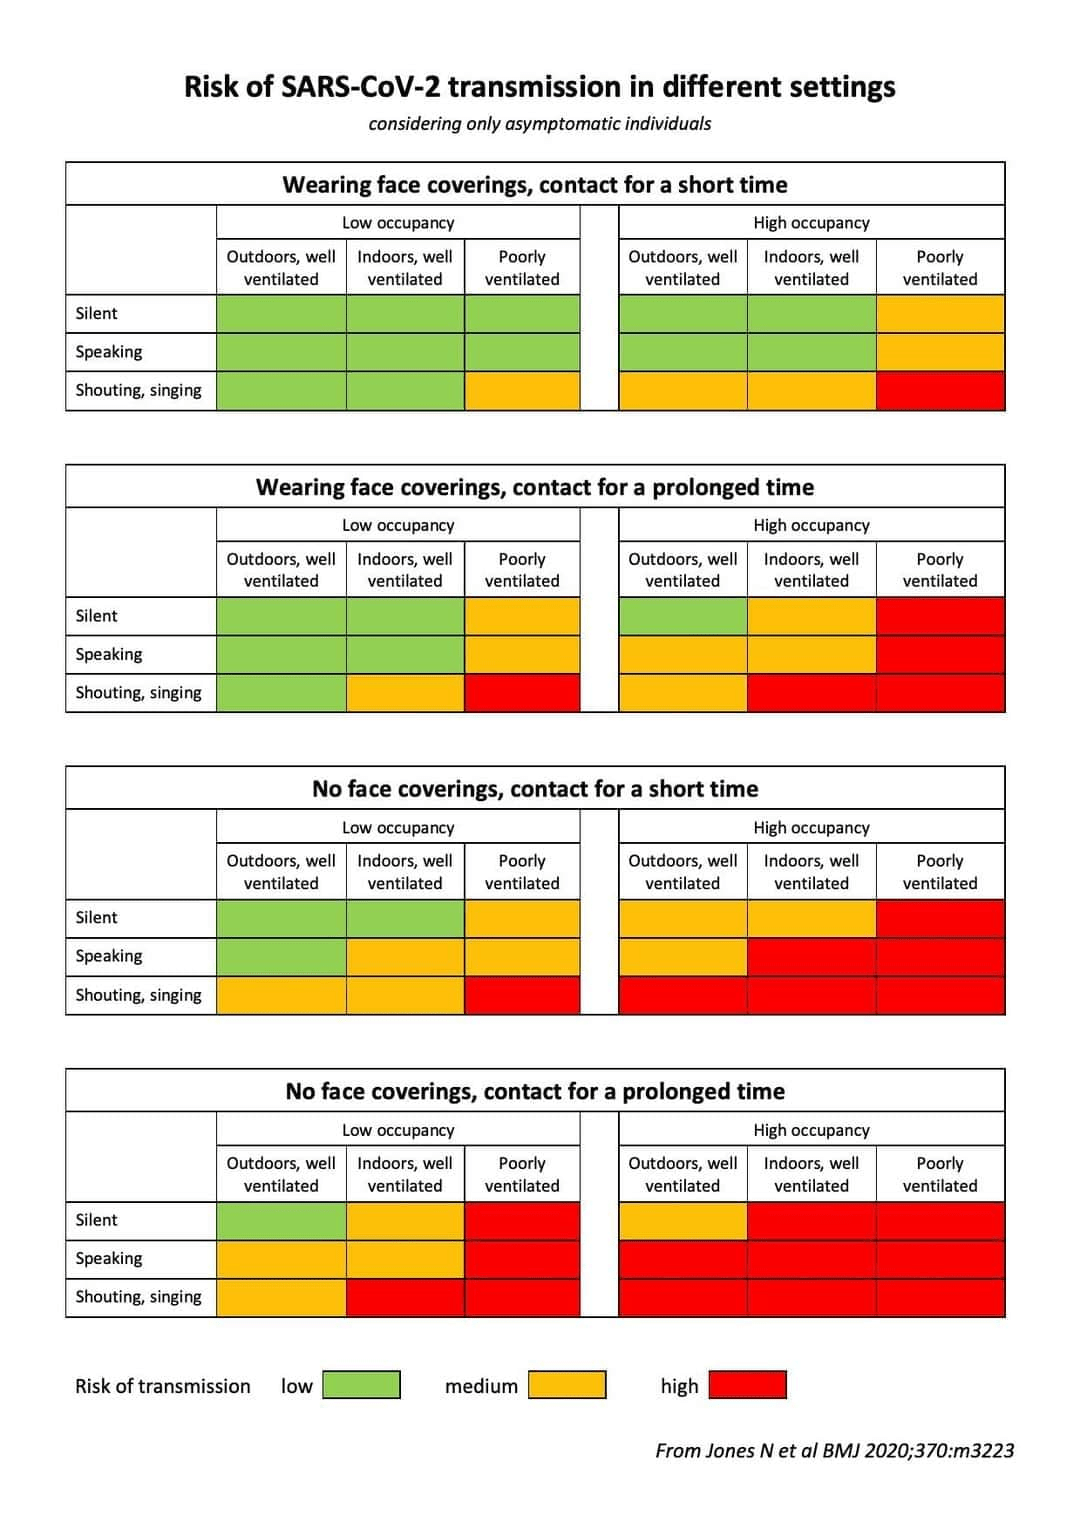 Risk of SARS-CoV-2 transmission in different settings